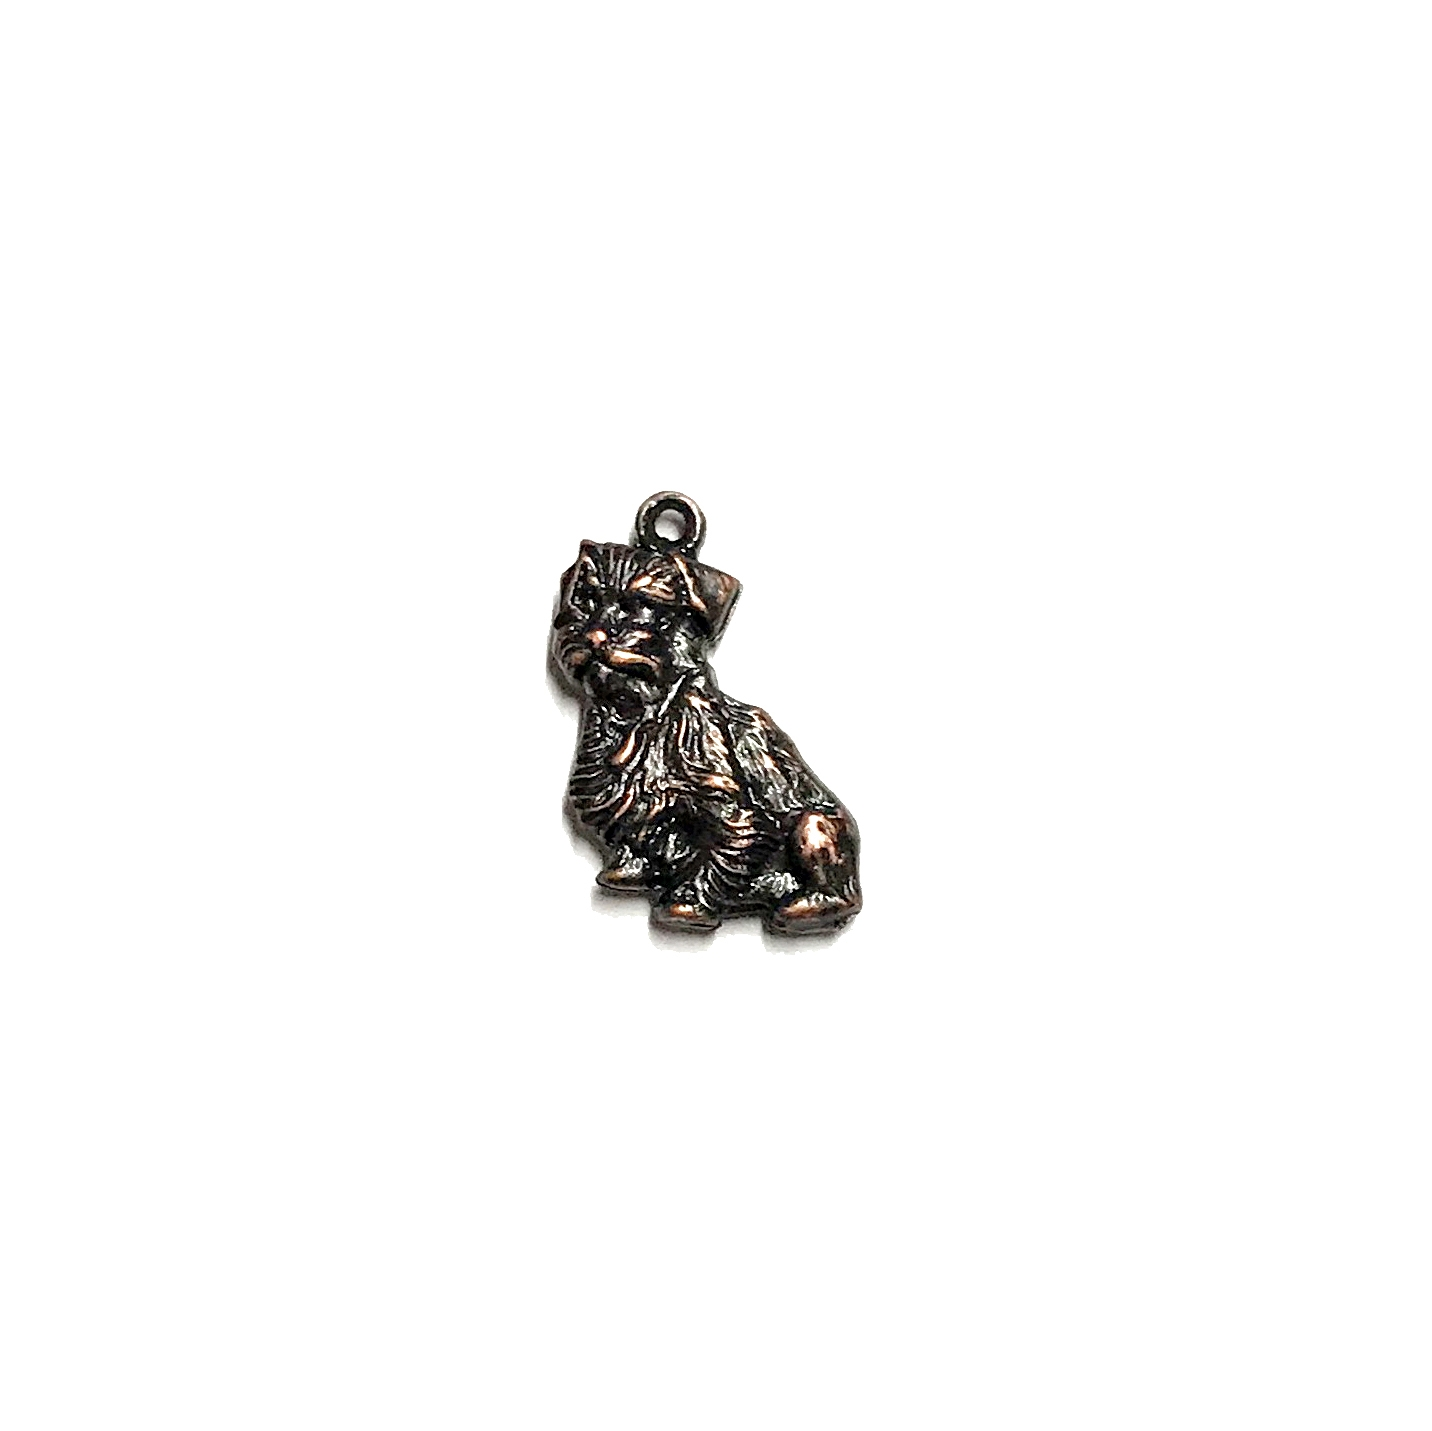 scotty dog charm, rusted iron brass, charm, puffy charm ,two sided, pet charm, dog, scotty, scotty dog, 15x13mm, stamping, rusted iron, brass, us made, nickel free, B'sue Boutiques, jewelry making, jewelry findings, jewelry supplies,vintage supplies,03503